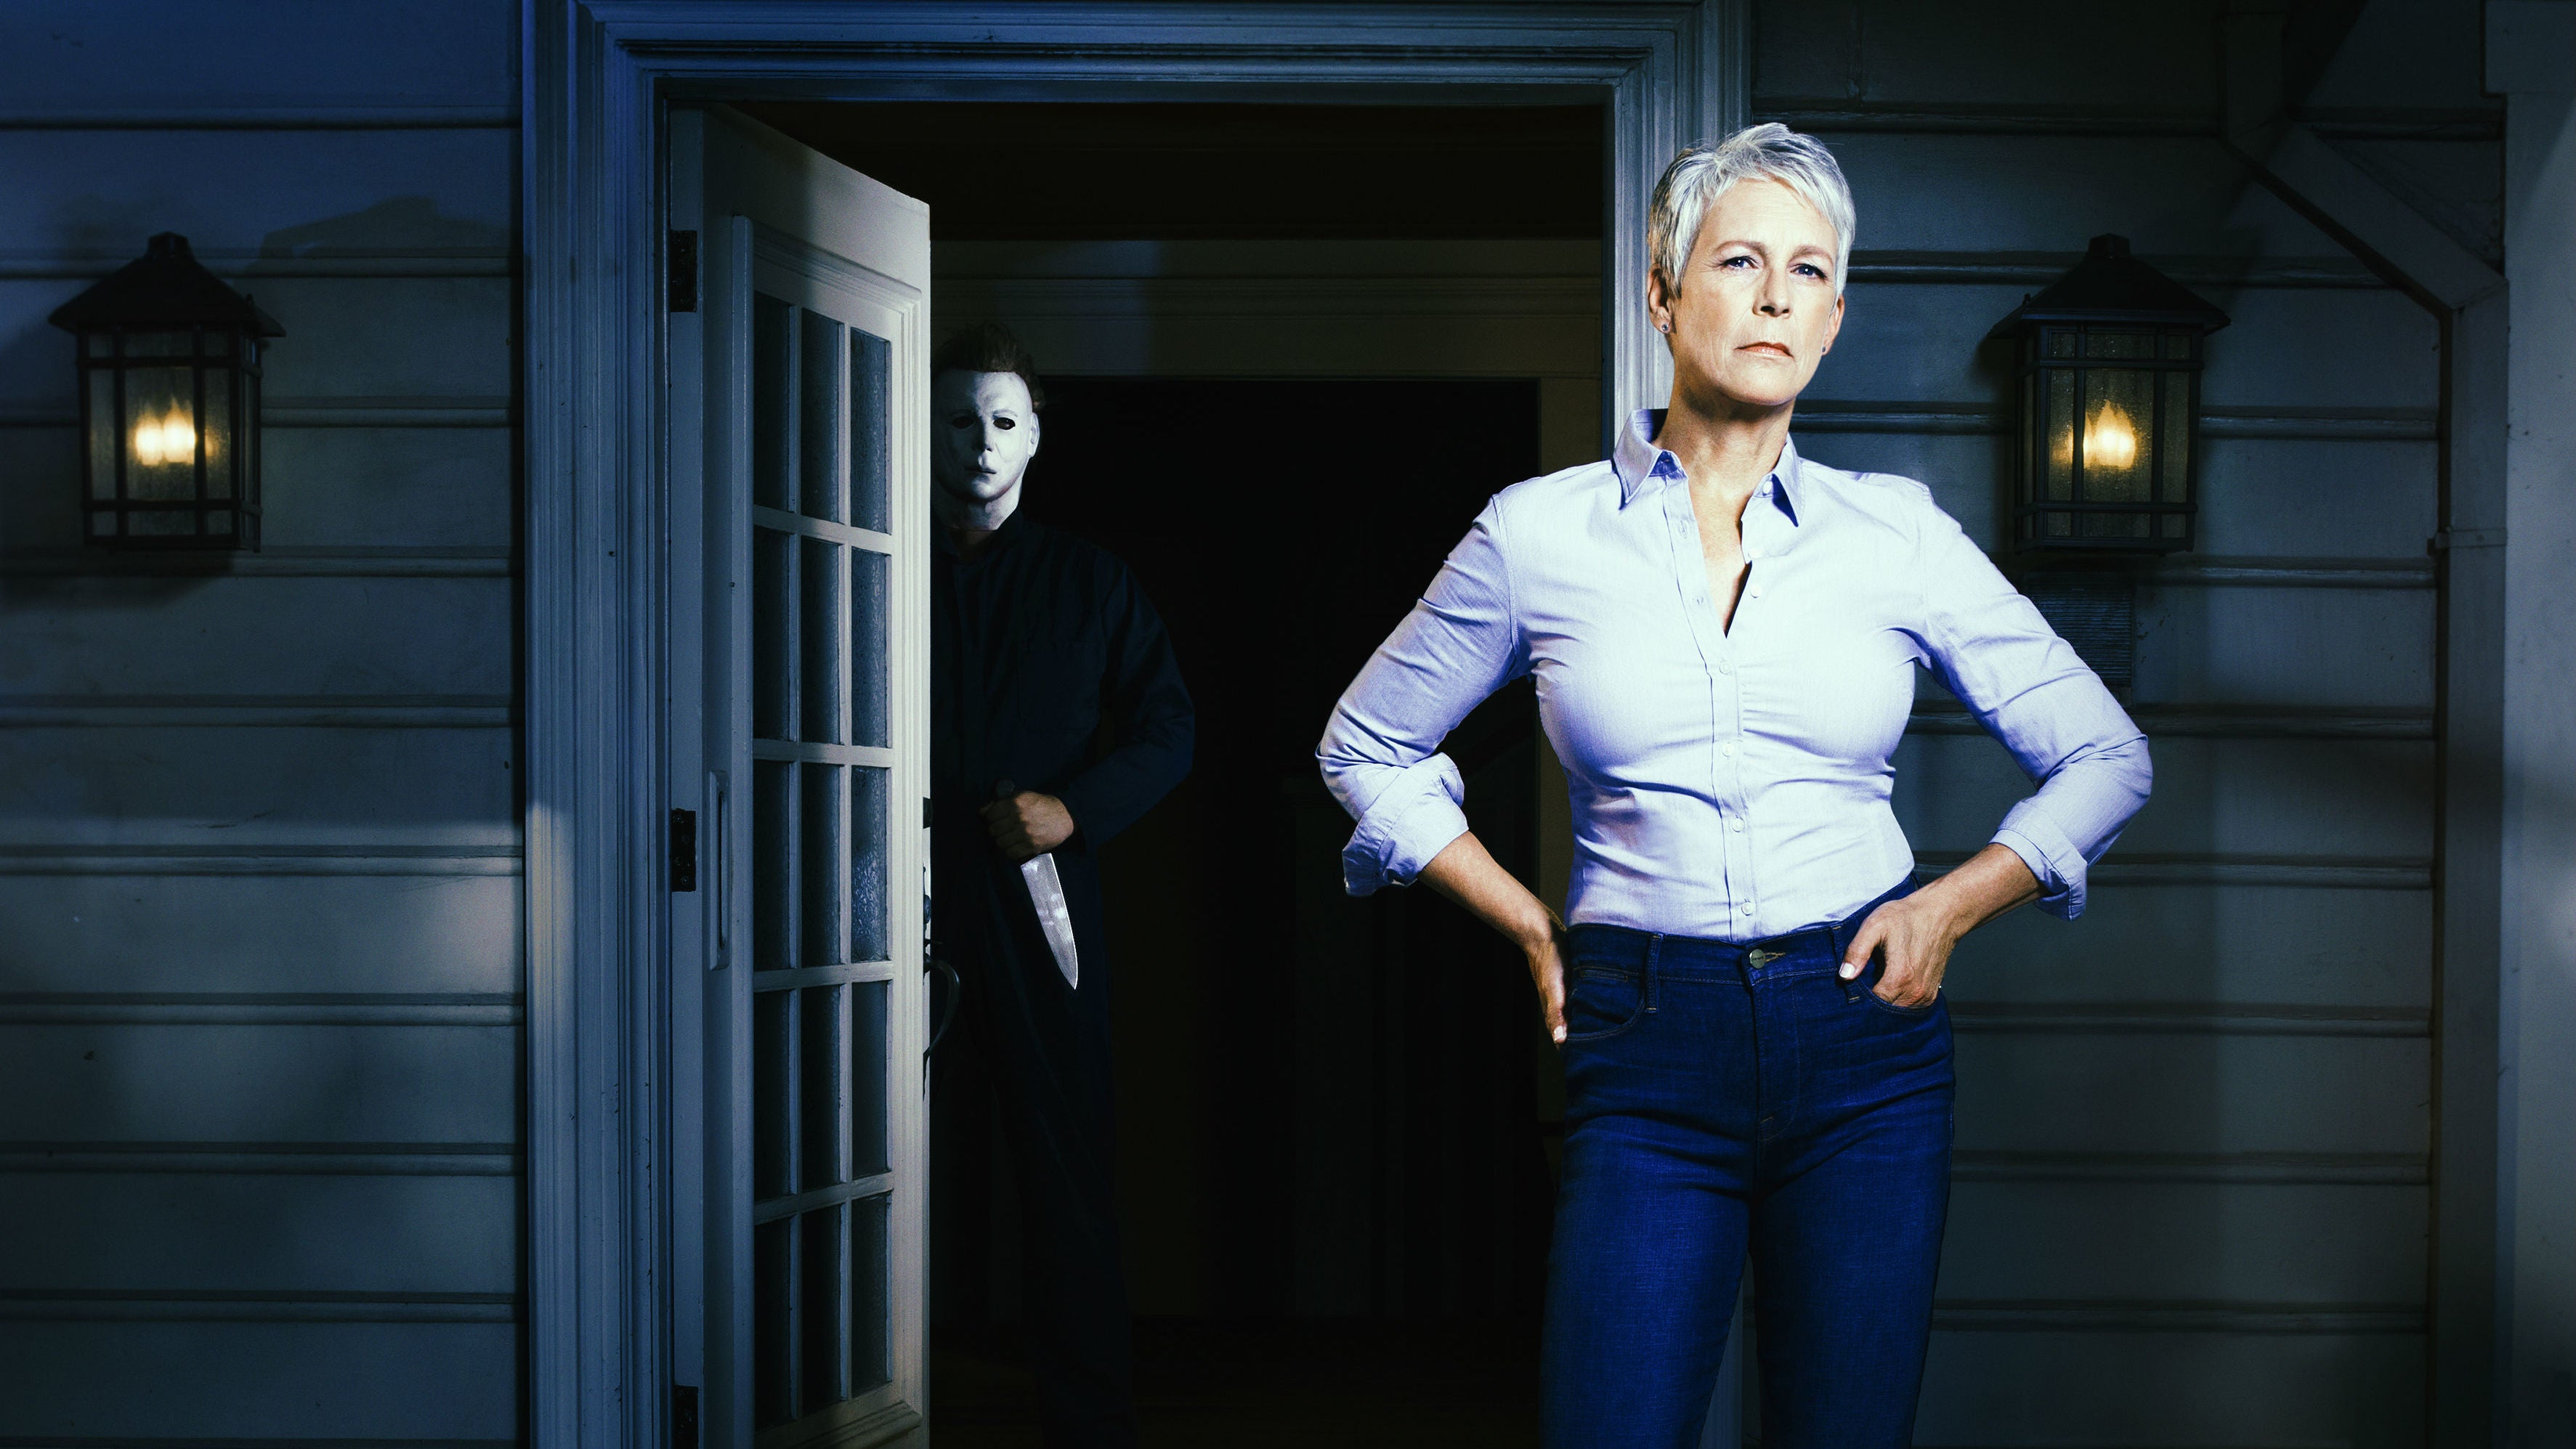 Jamie Lee Curtis returning to 'Halloween' for 2018 reboot